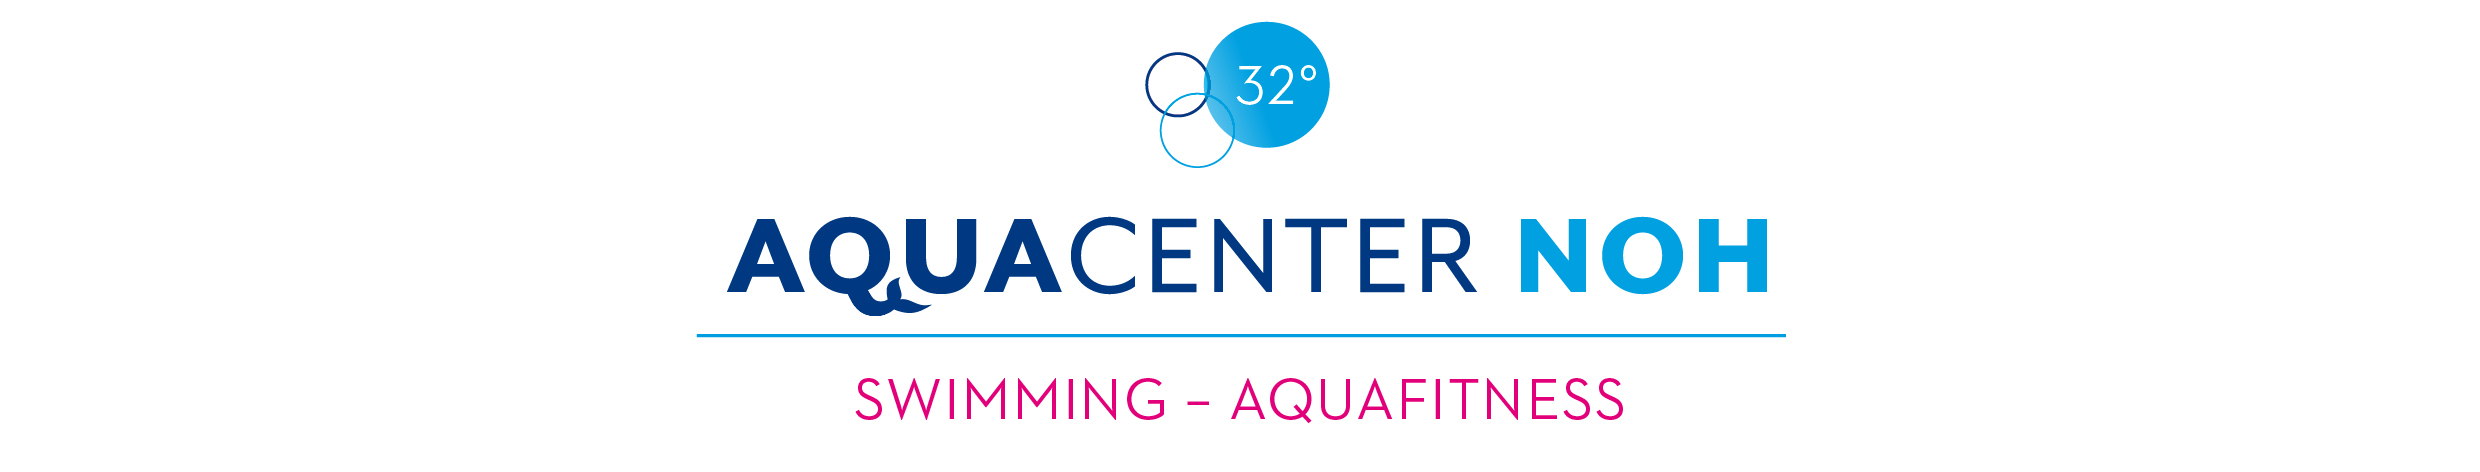 Aqua Center NOH ( Swimming - Aquafitness)